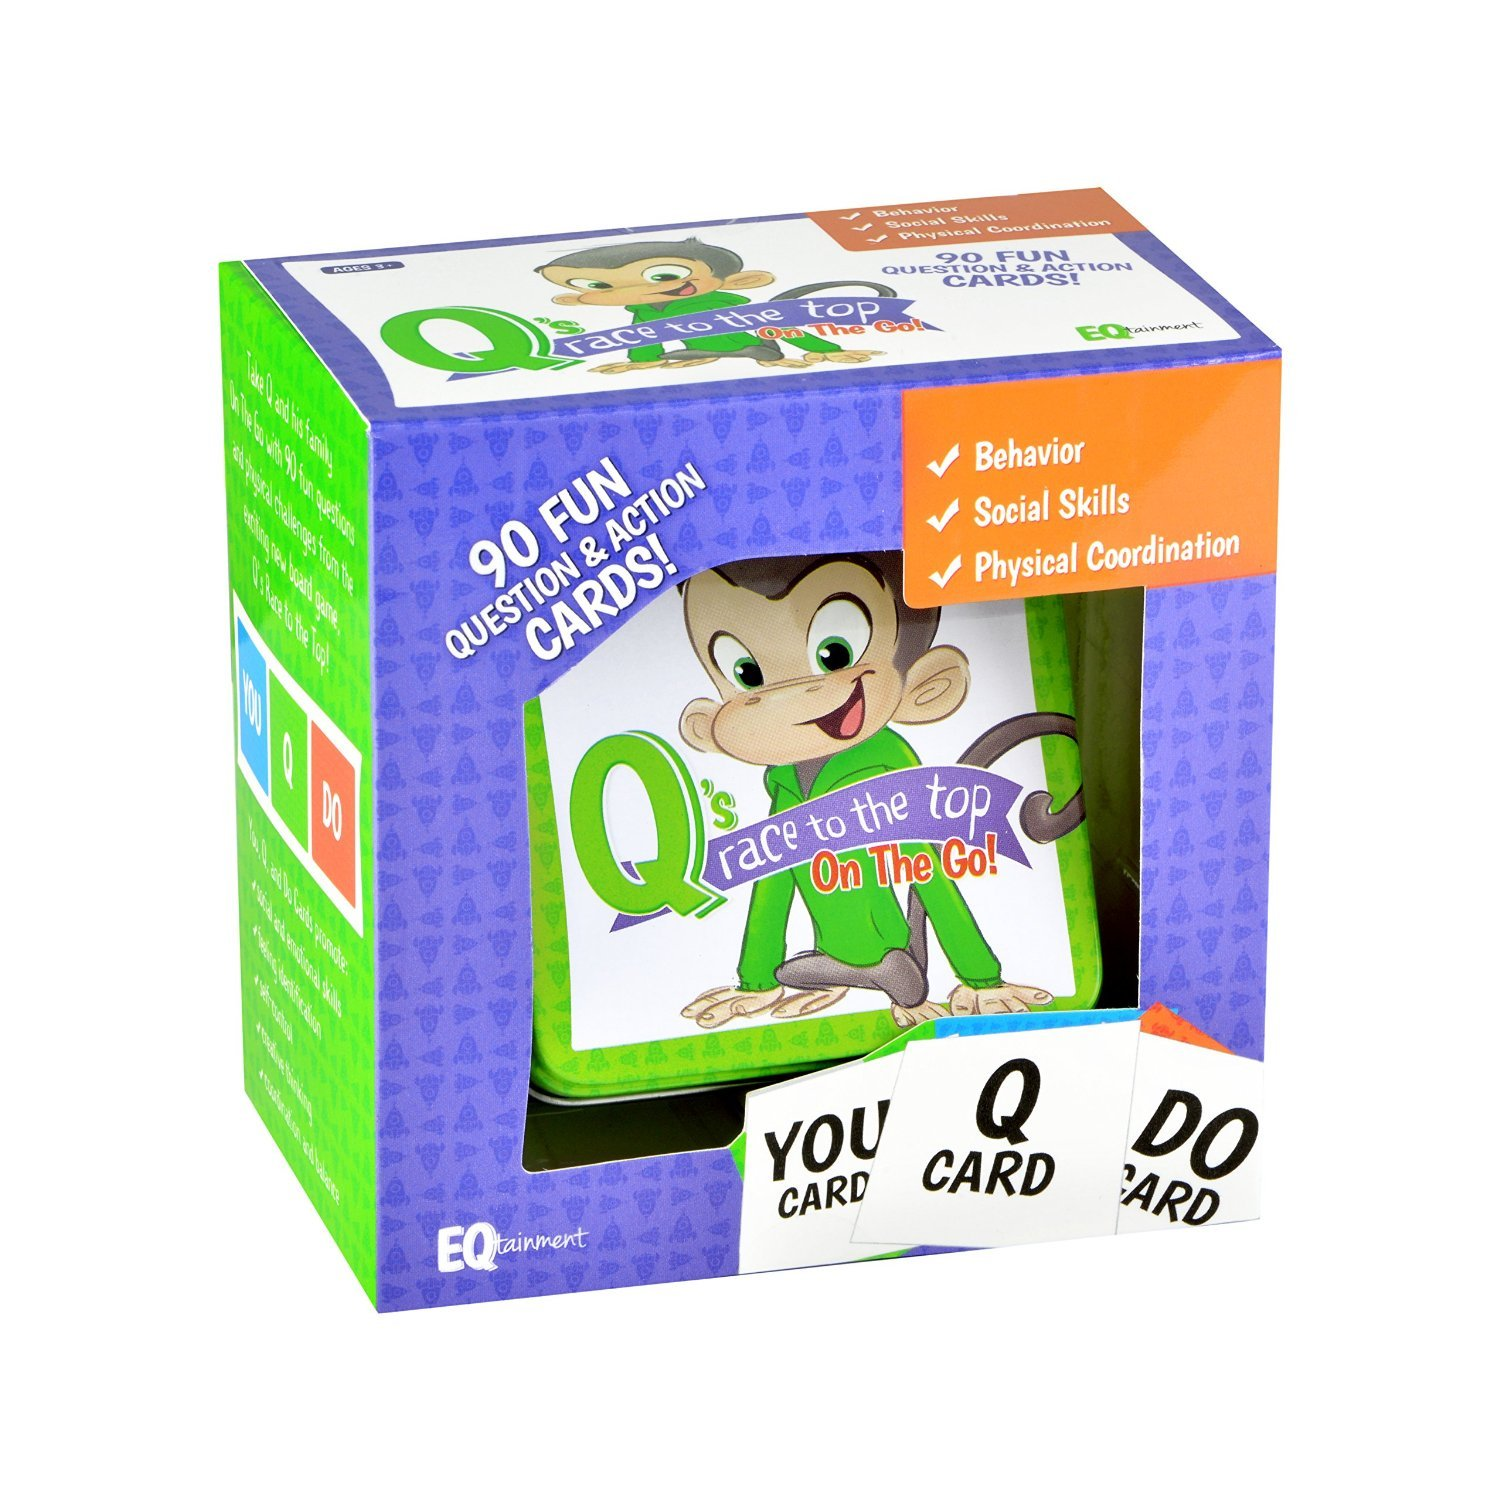 manners and emotional control! fun questions and activities for practicing social skills Qs Race to the Top On-the-Go Pack